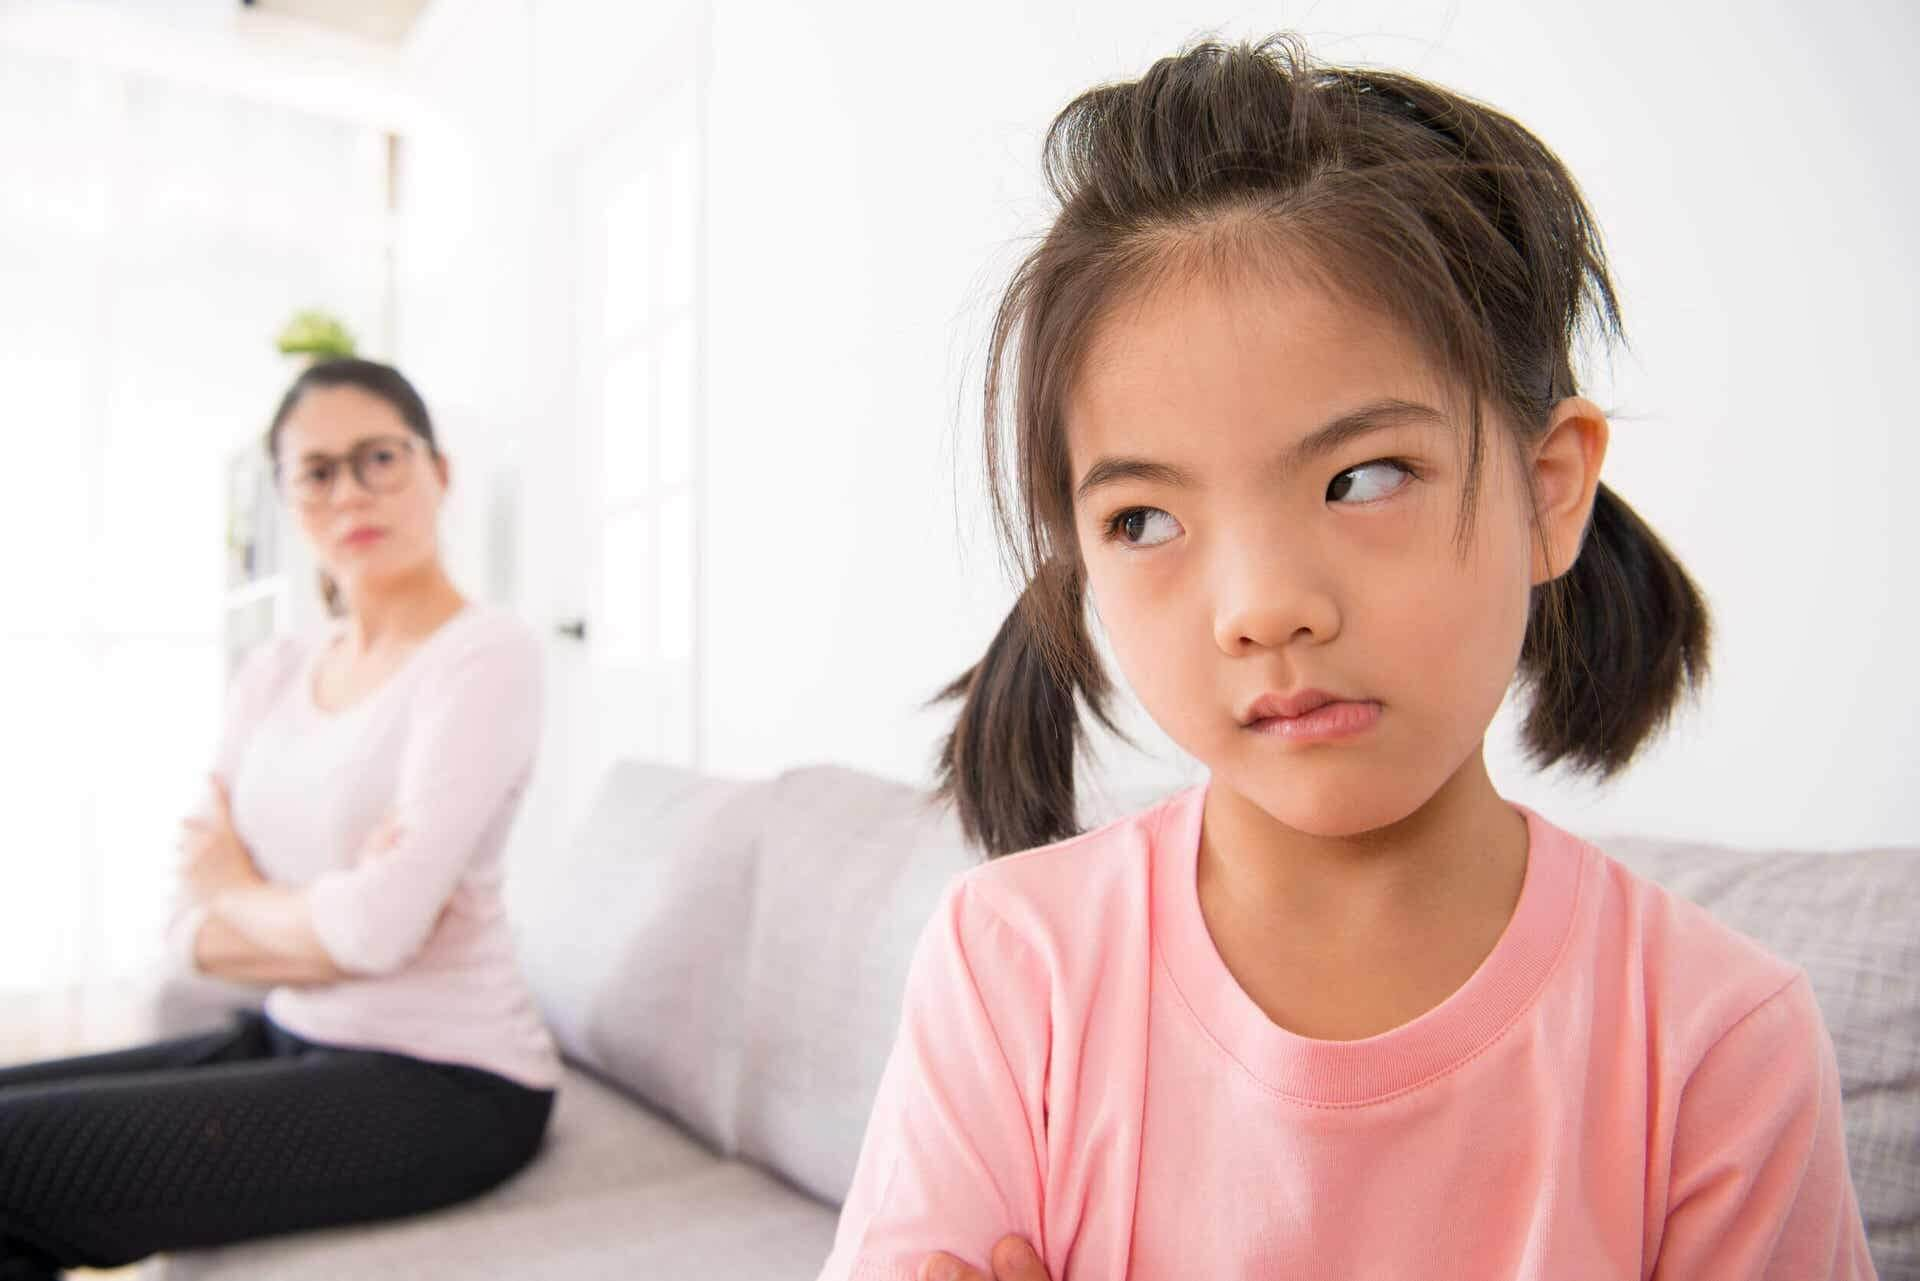 Girl very angry with her mother, she doesn't want to give her a hug.